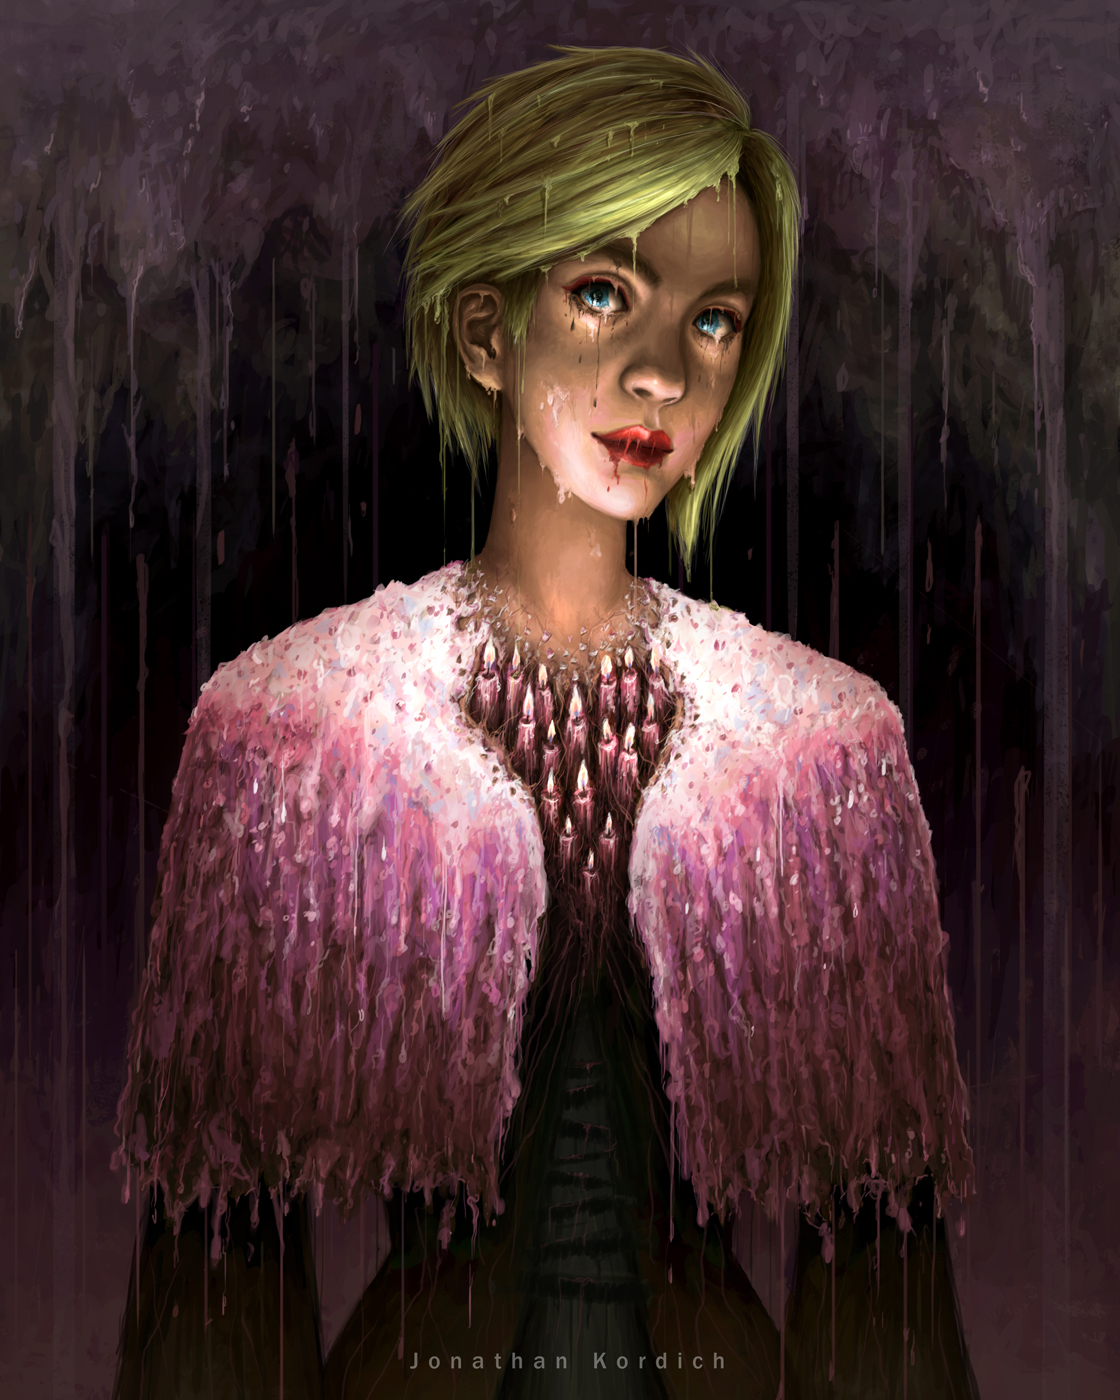 Blonde female with a cape made entirely of melted candle wax stands in the center. Upon further investigation it is noticeable that she herself is also melting: her eyes, lips, and jaw begin to drip.